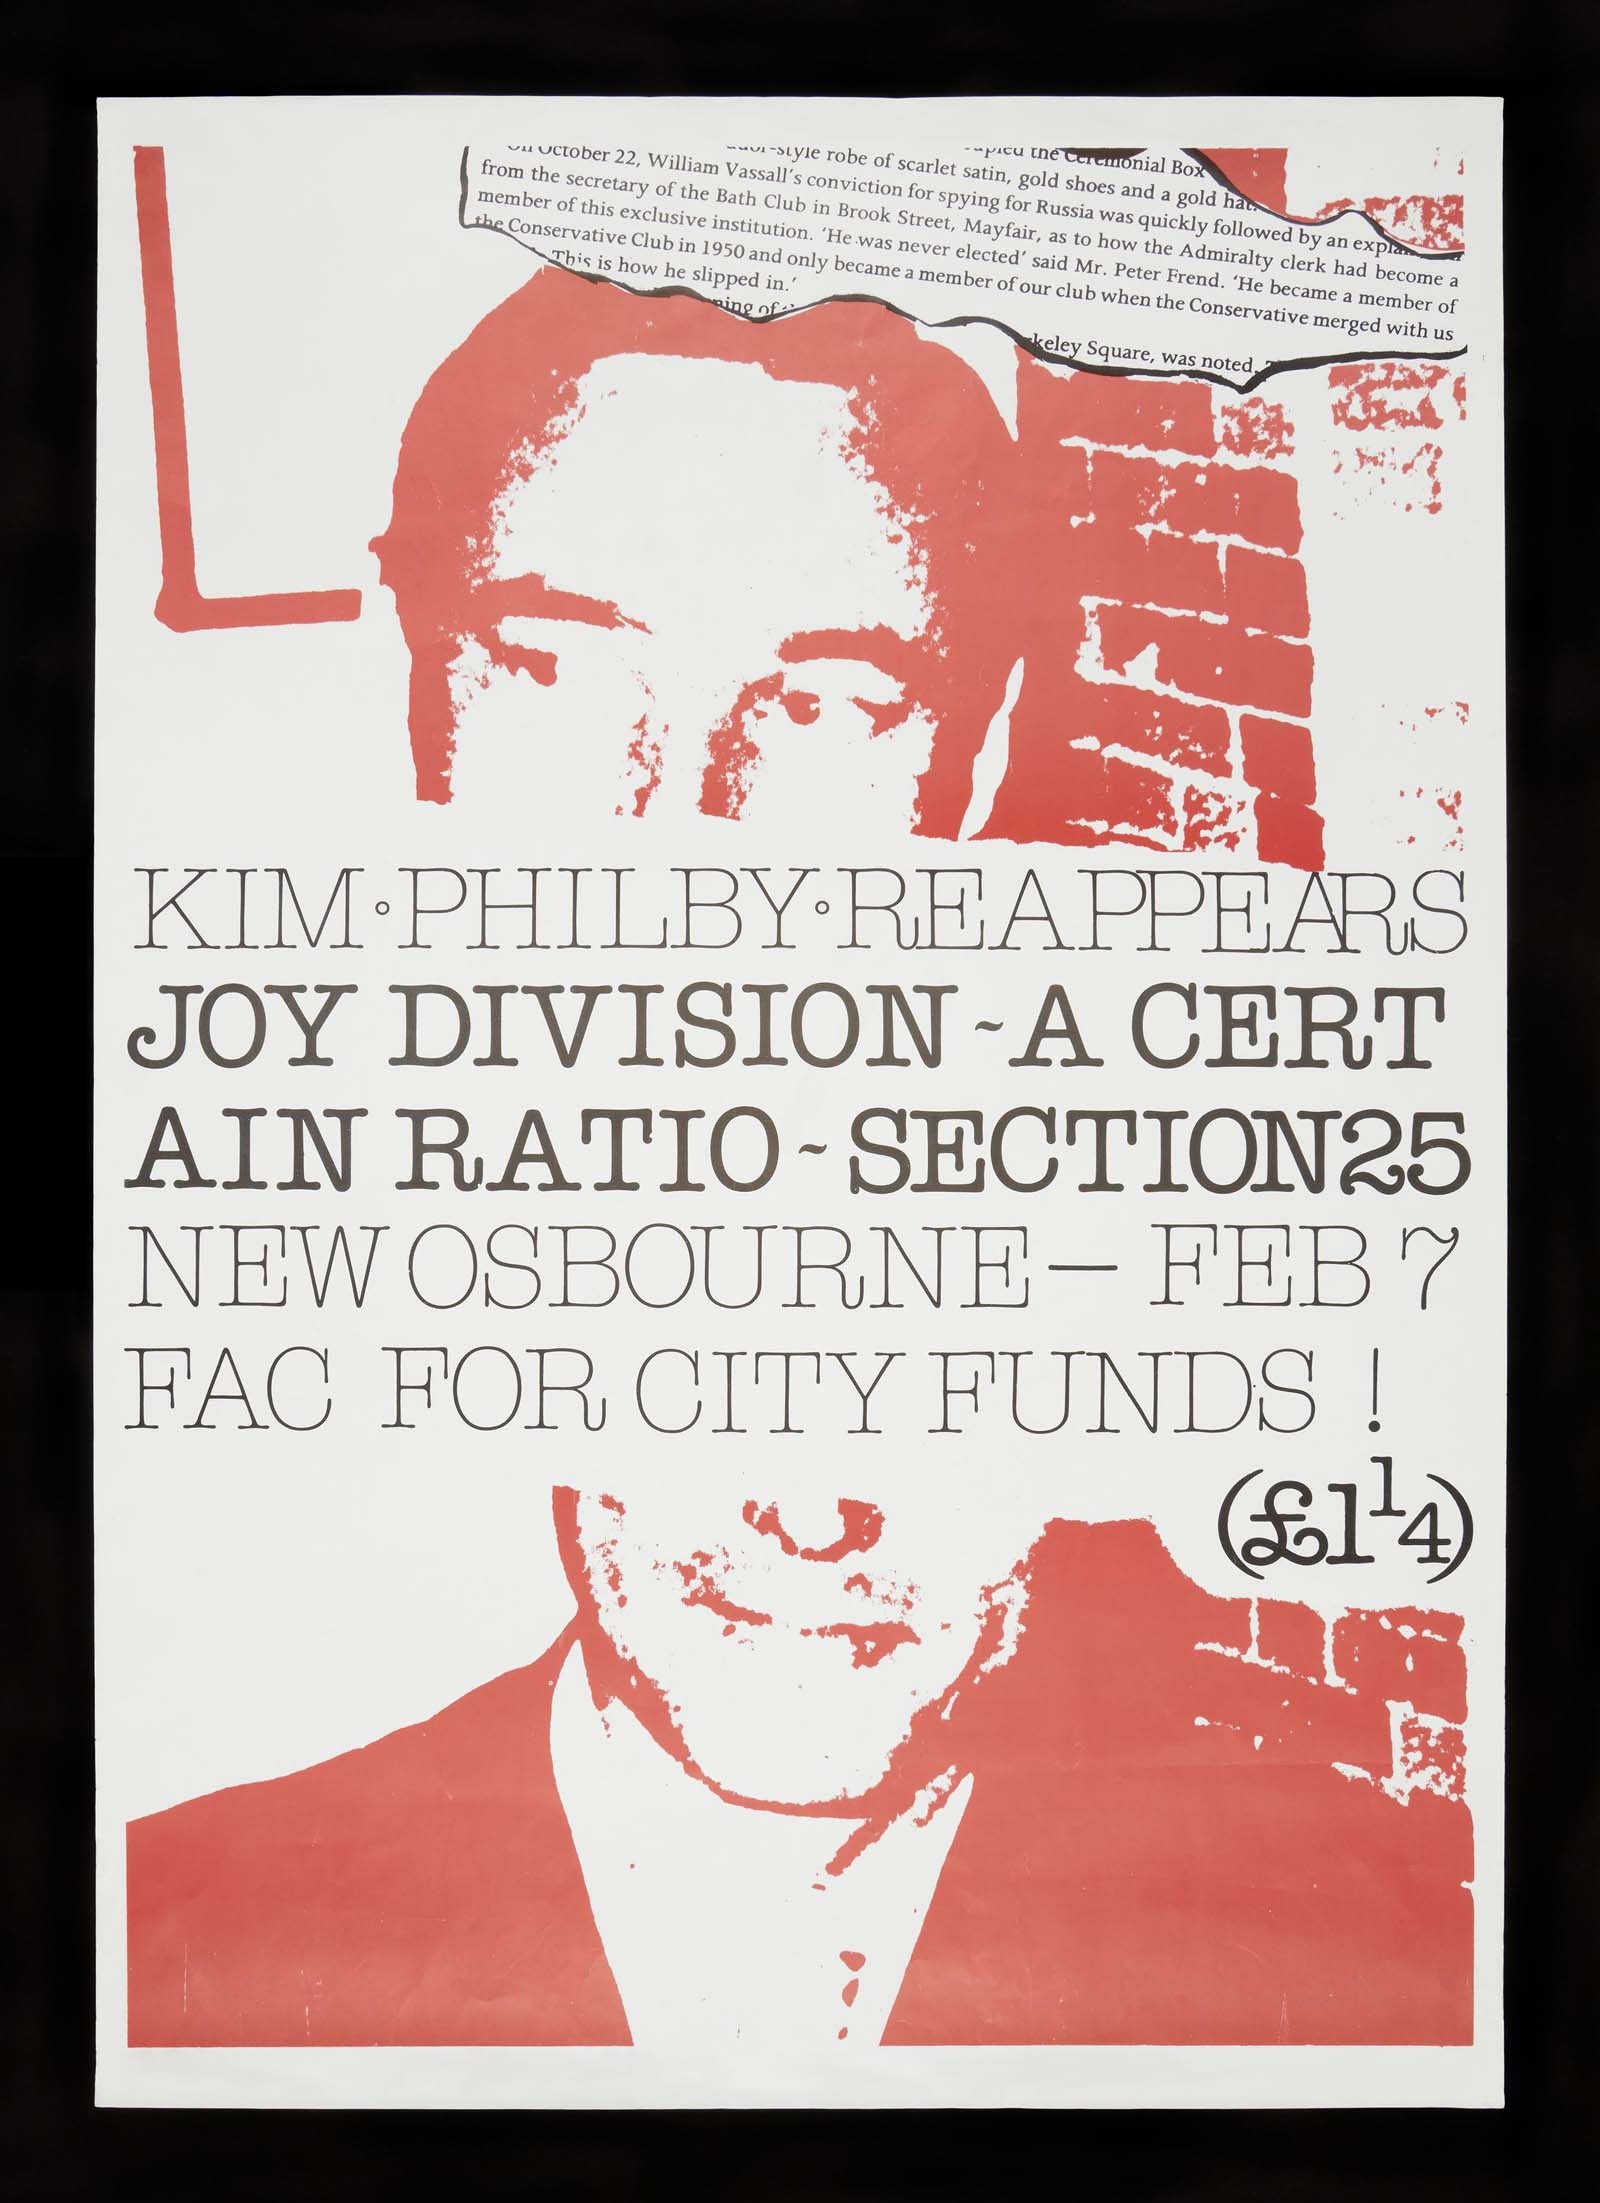 concert poster with the bands names Joy Division, Section 25 and A Certain Ratio inserted into the middle of a picture of a man printed in red